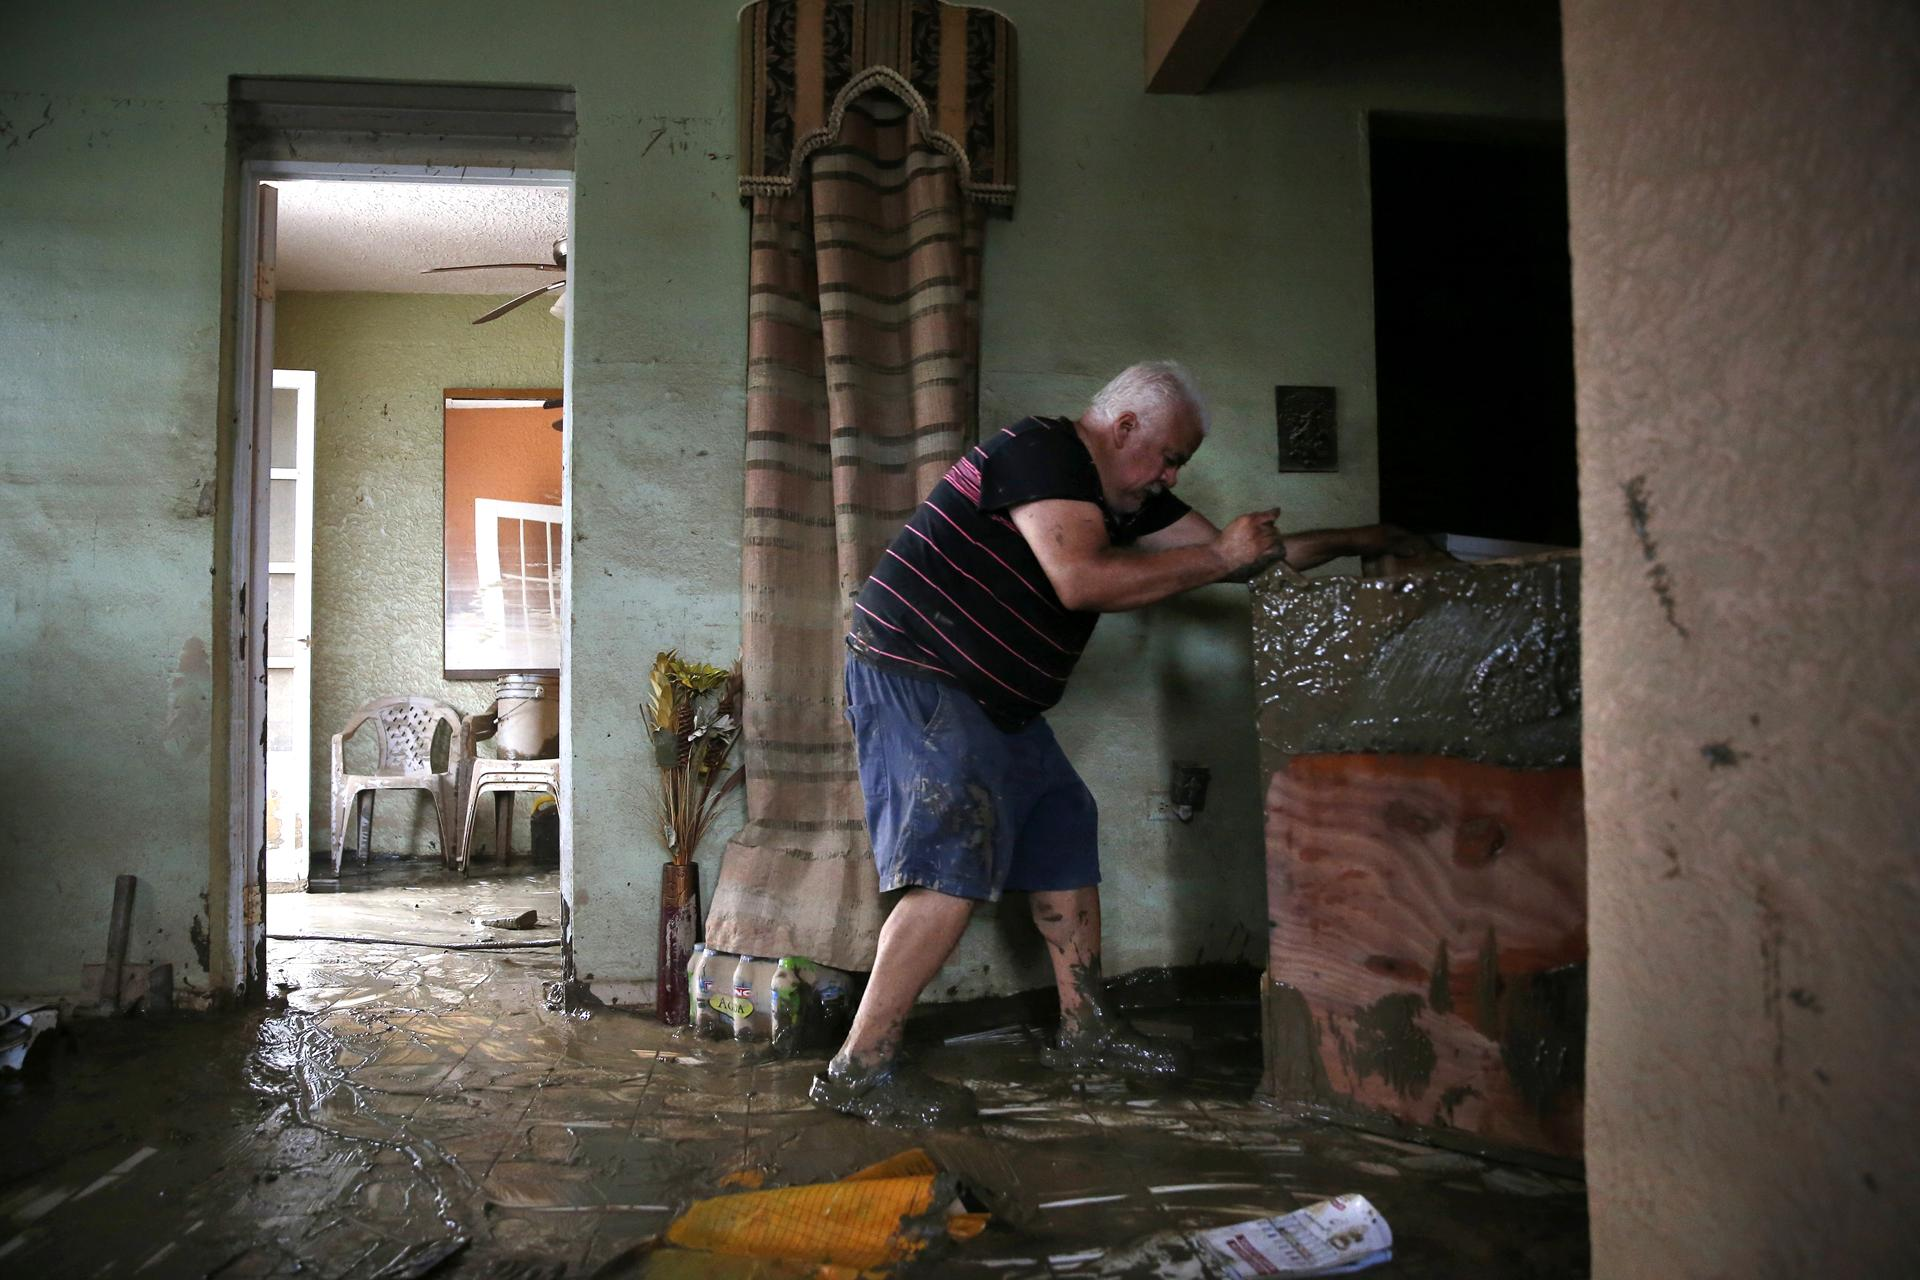 Toa Baja, Puerto Rico -- 9/30/2017 - Geraldo Rivera, 51, helps his neighbor move a dresser ruined in the flood waters inside the home on Avenida Calle Palma Villa Calma after Hurricane Maria. (Jessica Rinaldi/Globe Staff) Topic: Reporter: